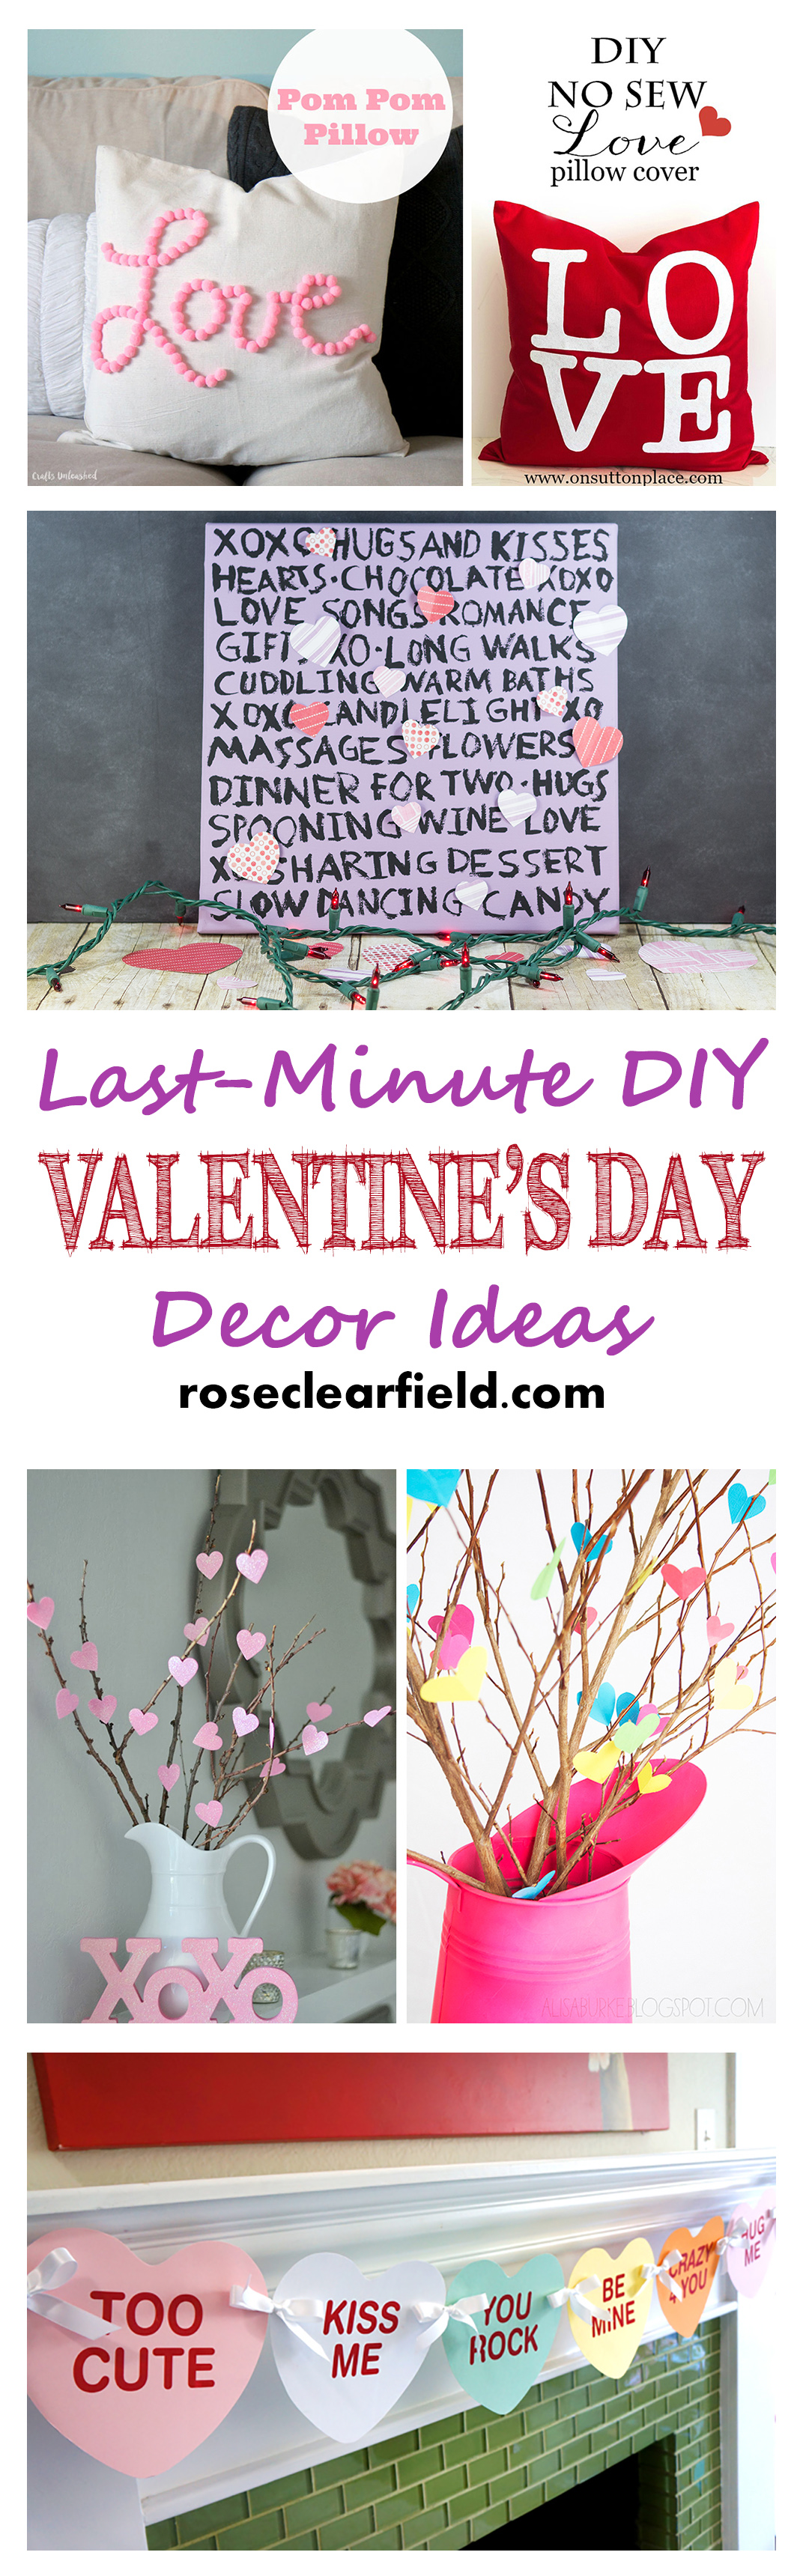 last minute diy valentine 39 s day decor ideas rose clearfield. Black Bedroom Furniture Sets. Home Design Ideas